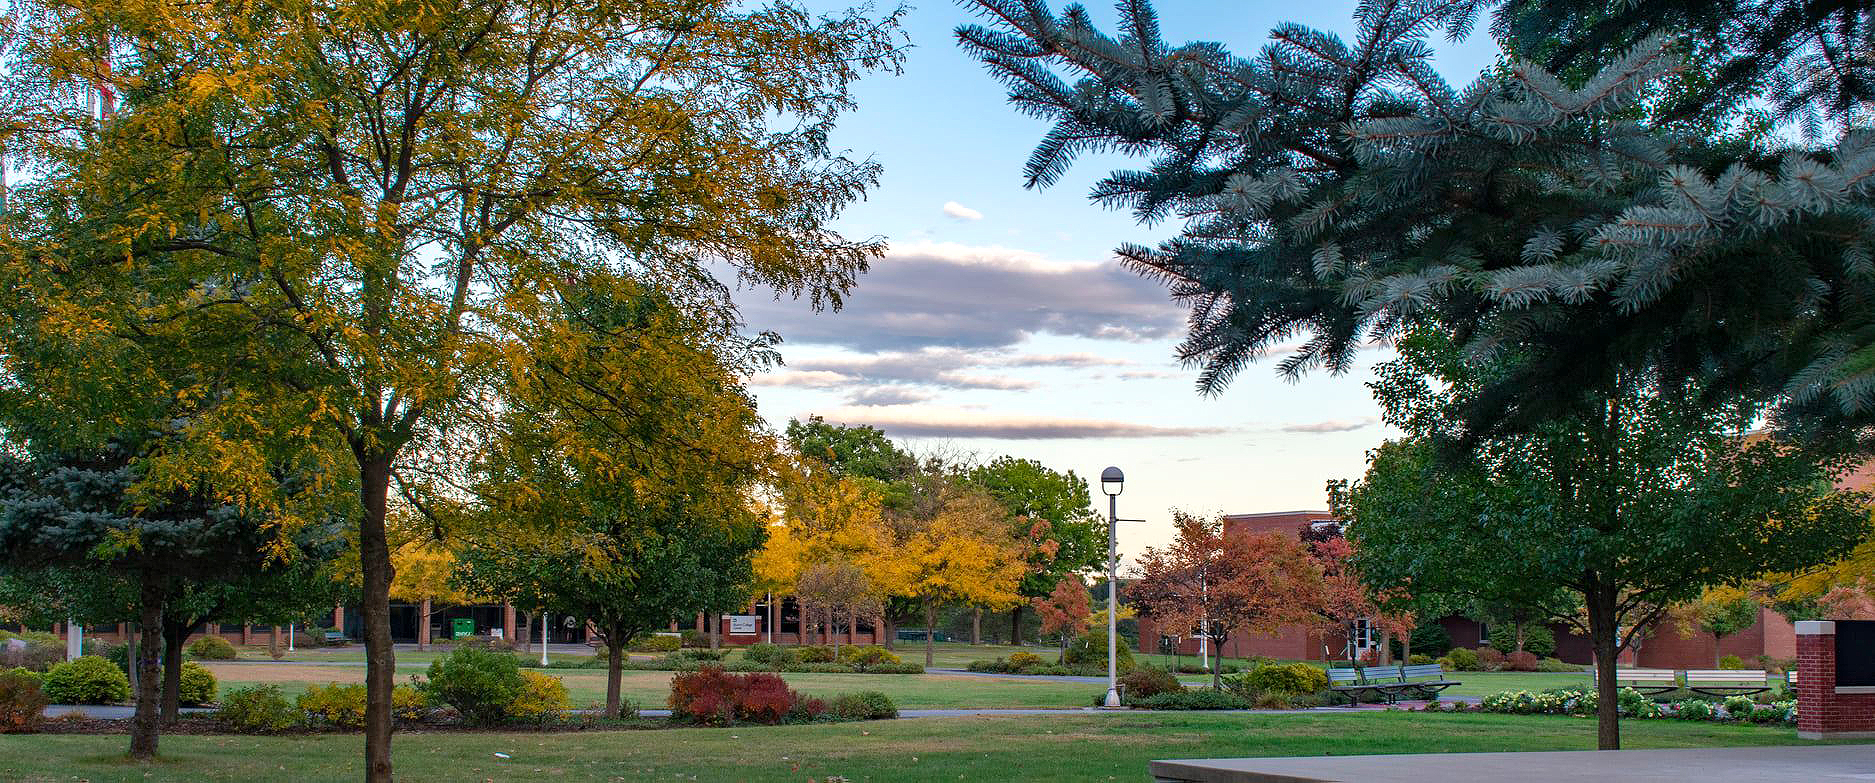 MVCC campus in the fall